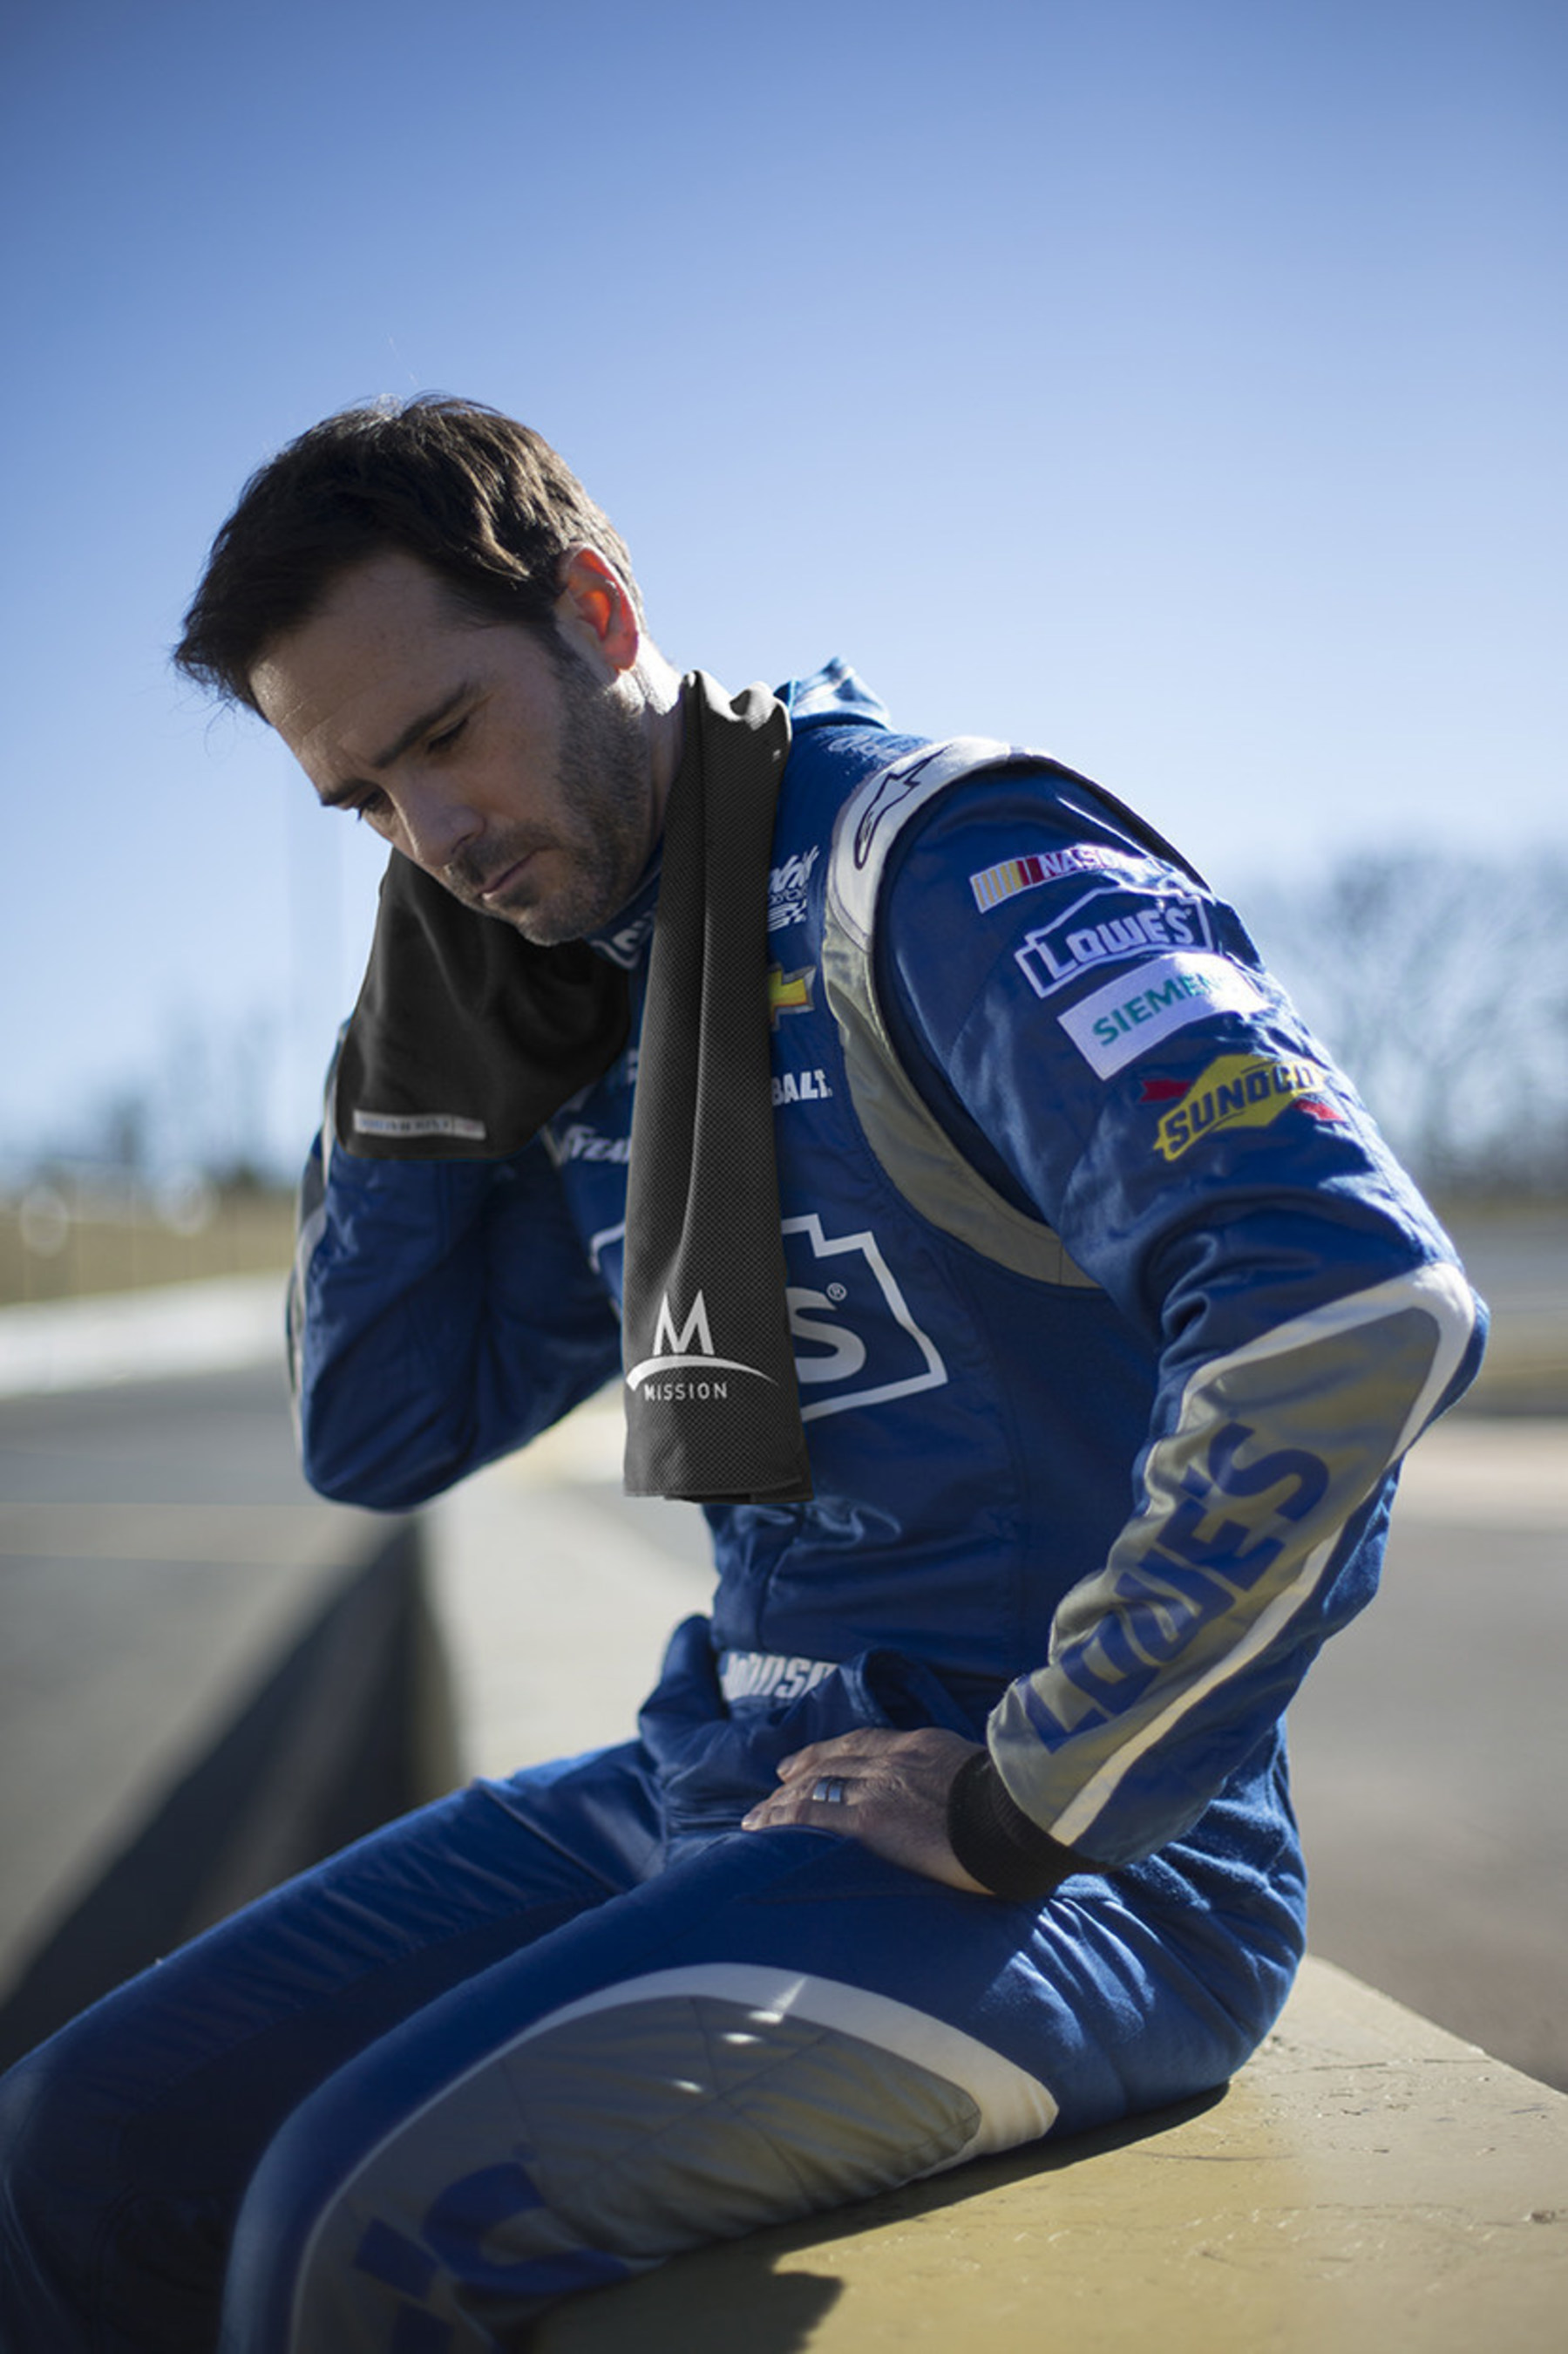 MISSION Athletecare partners with six-time NASCAR champion Jimmie Johnson and Lowe's to launch nationwide heat safety awareness campaign.